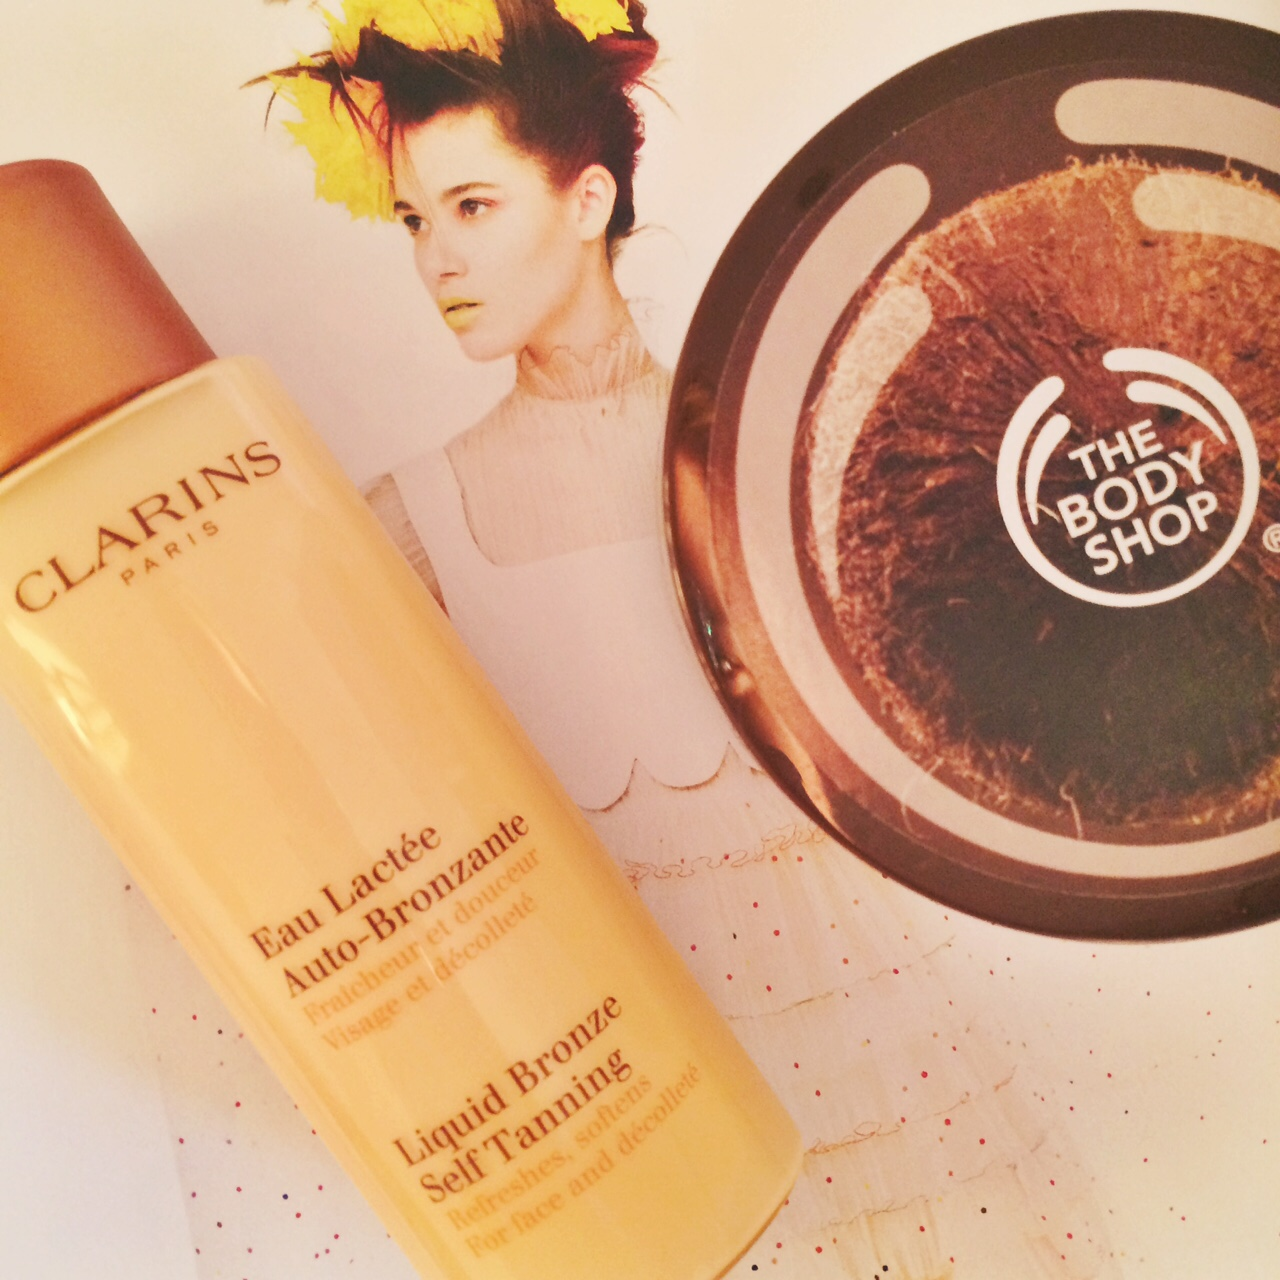 Winter skincare - Clarins and The Body Shop | All Dolled Up